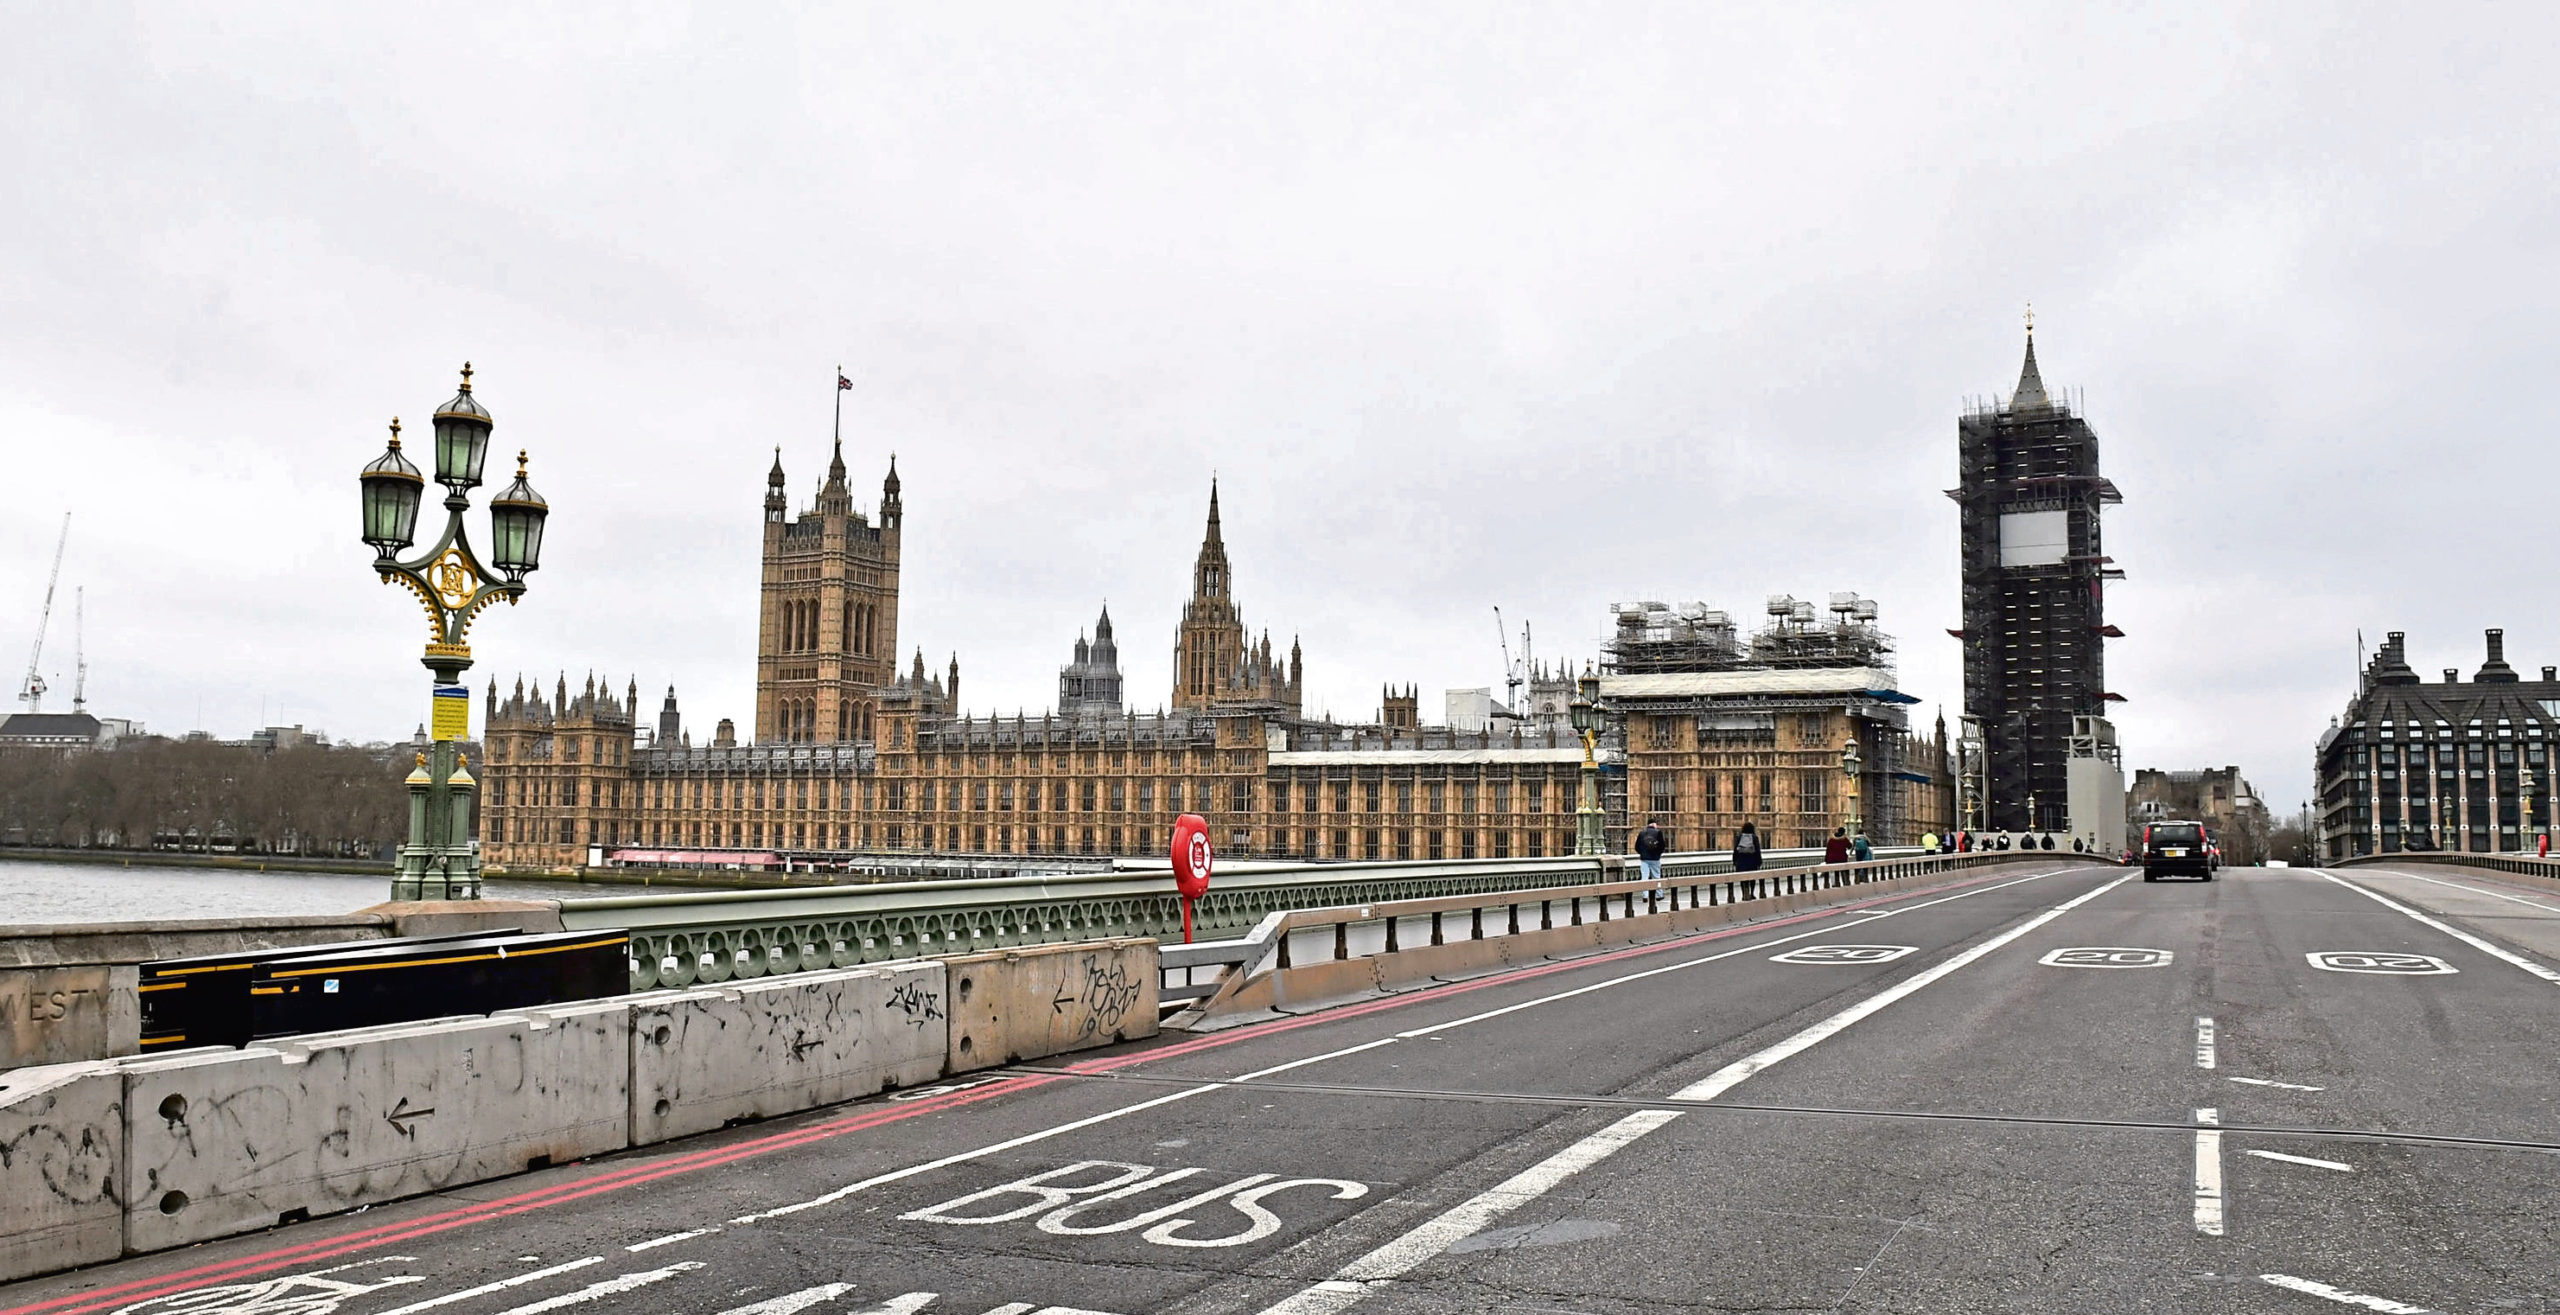 PABest  A very quiet Westminster Bridge, as the death toll from coronavirus in the UK reached 71 people. PA Photo. Picture date: Wednesday March 18, 2020. See PA story HEALTH Coronavirus. Photo credit should read: Dominic Lipinski/PA Wire